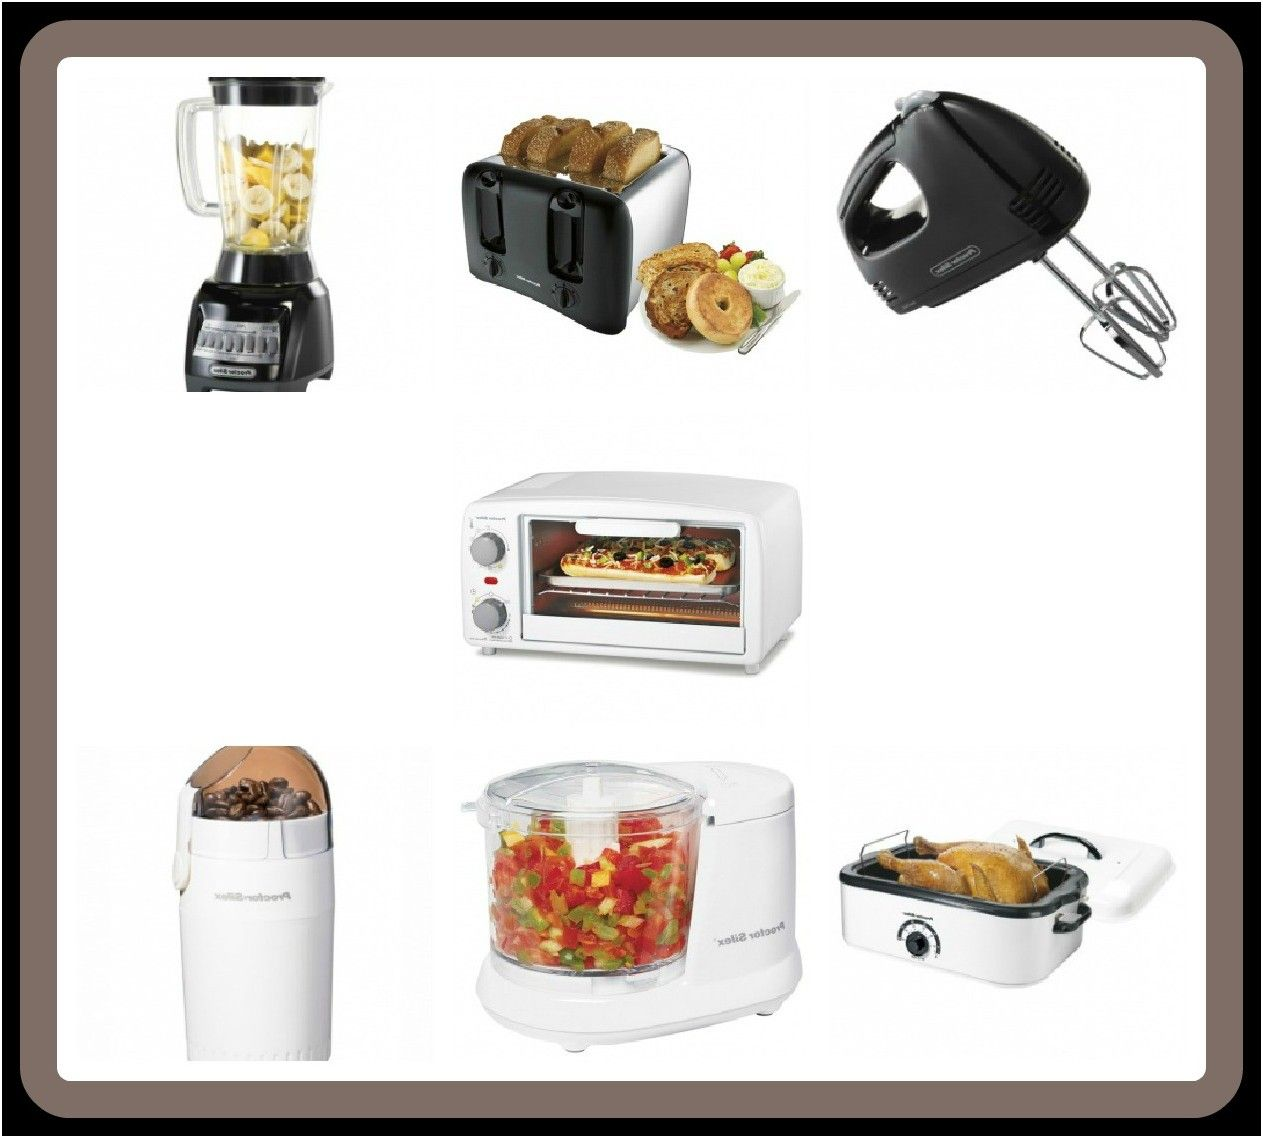 tar small appliances images reverse search from target small